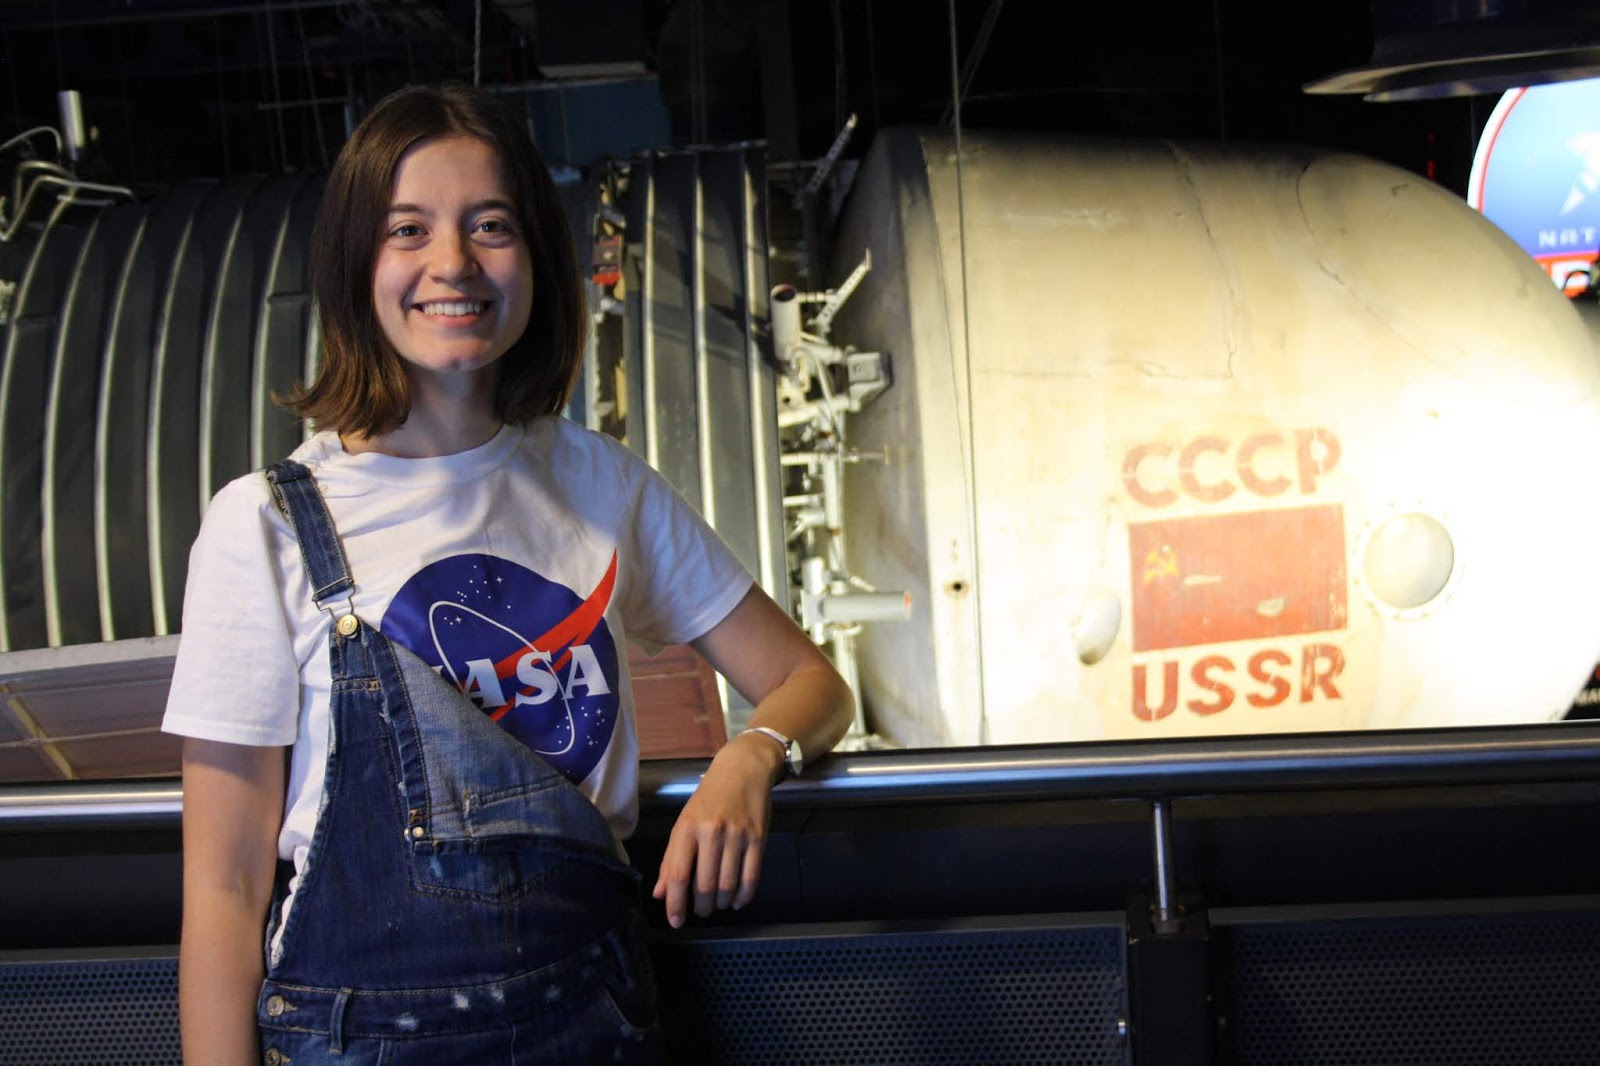 Abbey, wearing a NASA t-shirt and dungarees, stands in front of a USSR space craft